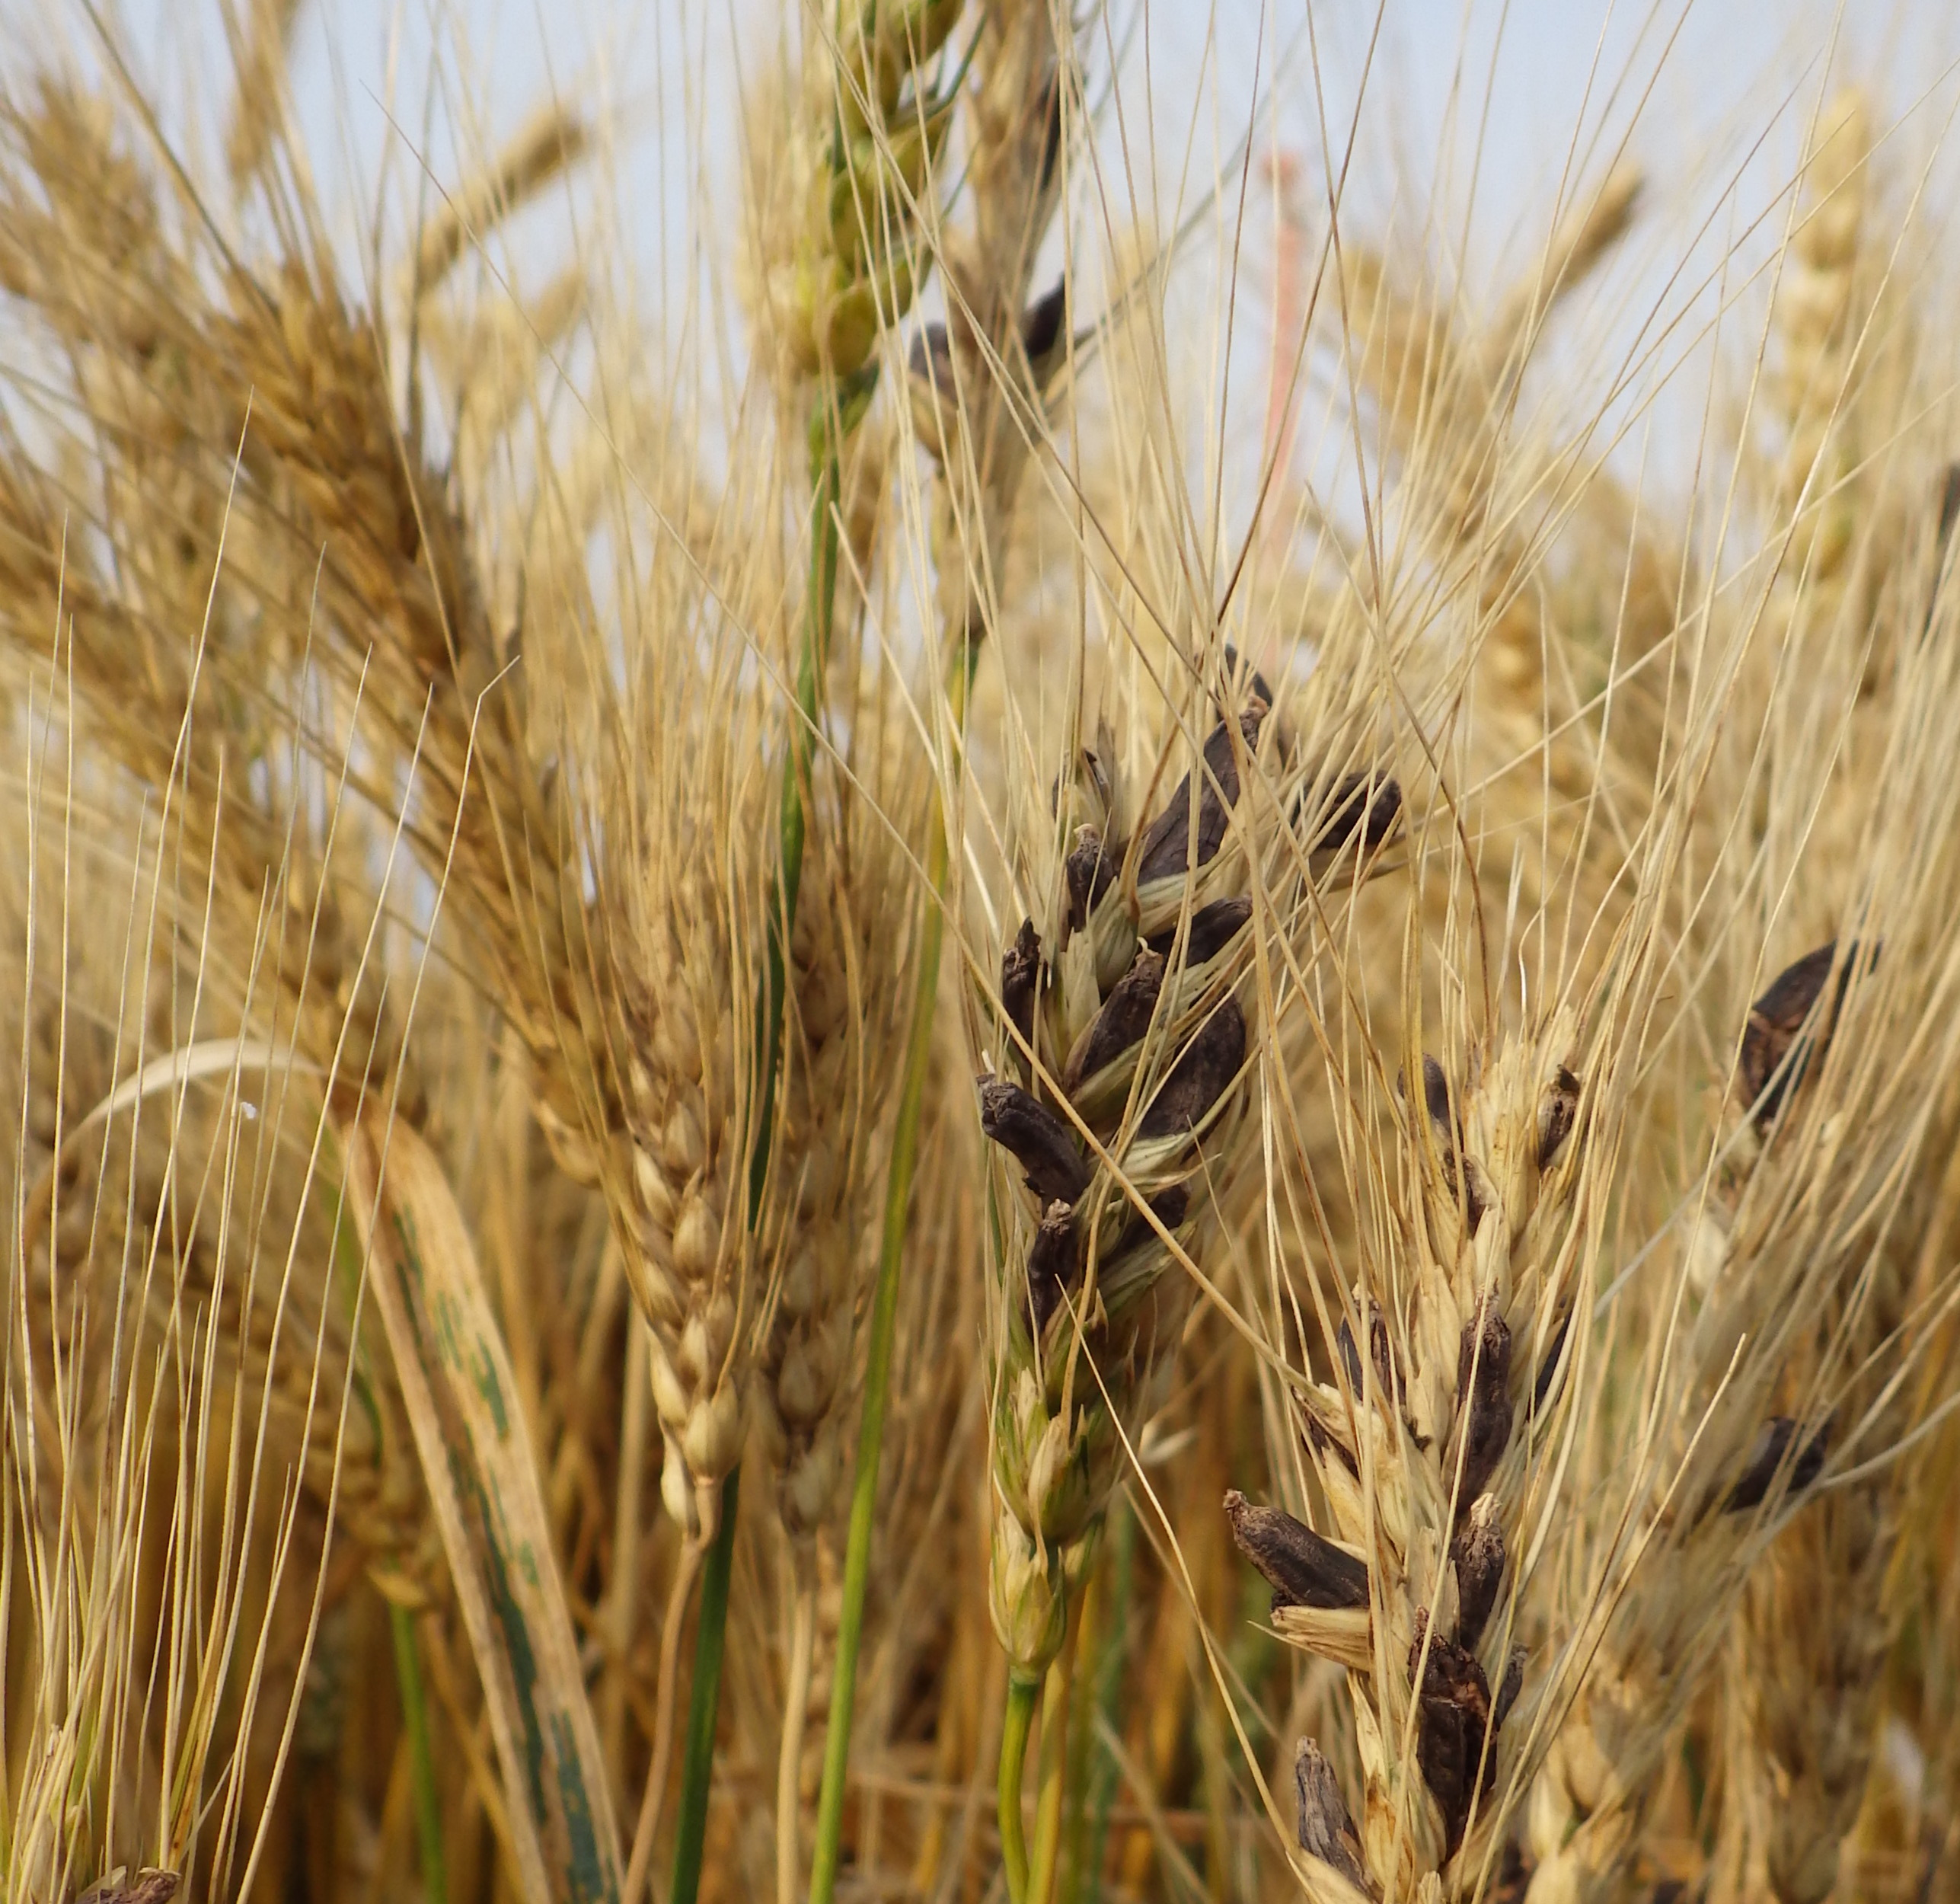 Wheat kernels replaced by fungal growth indicative of ergot.